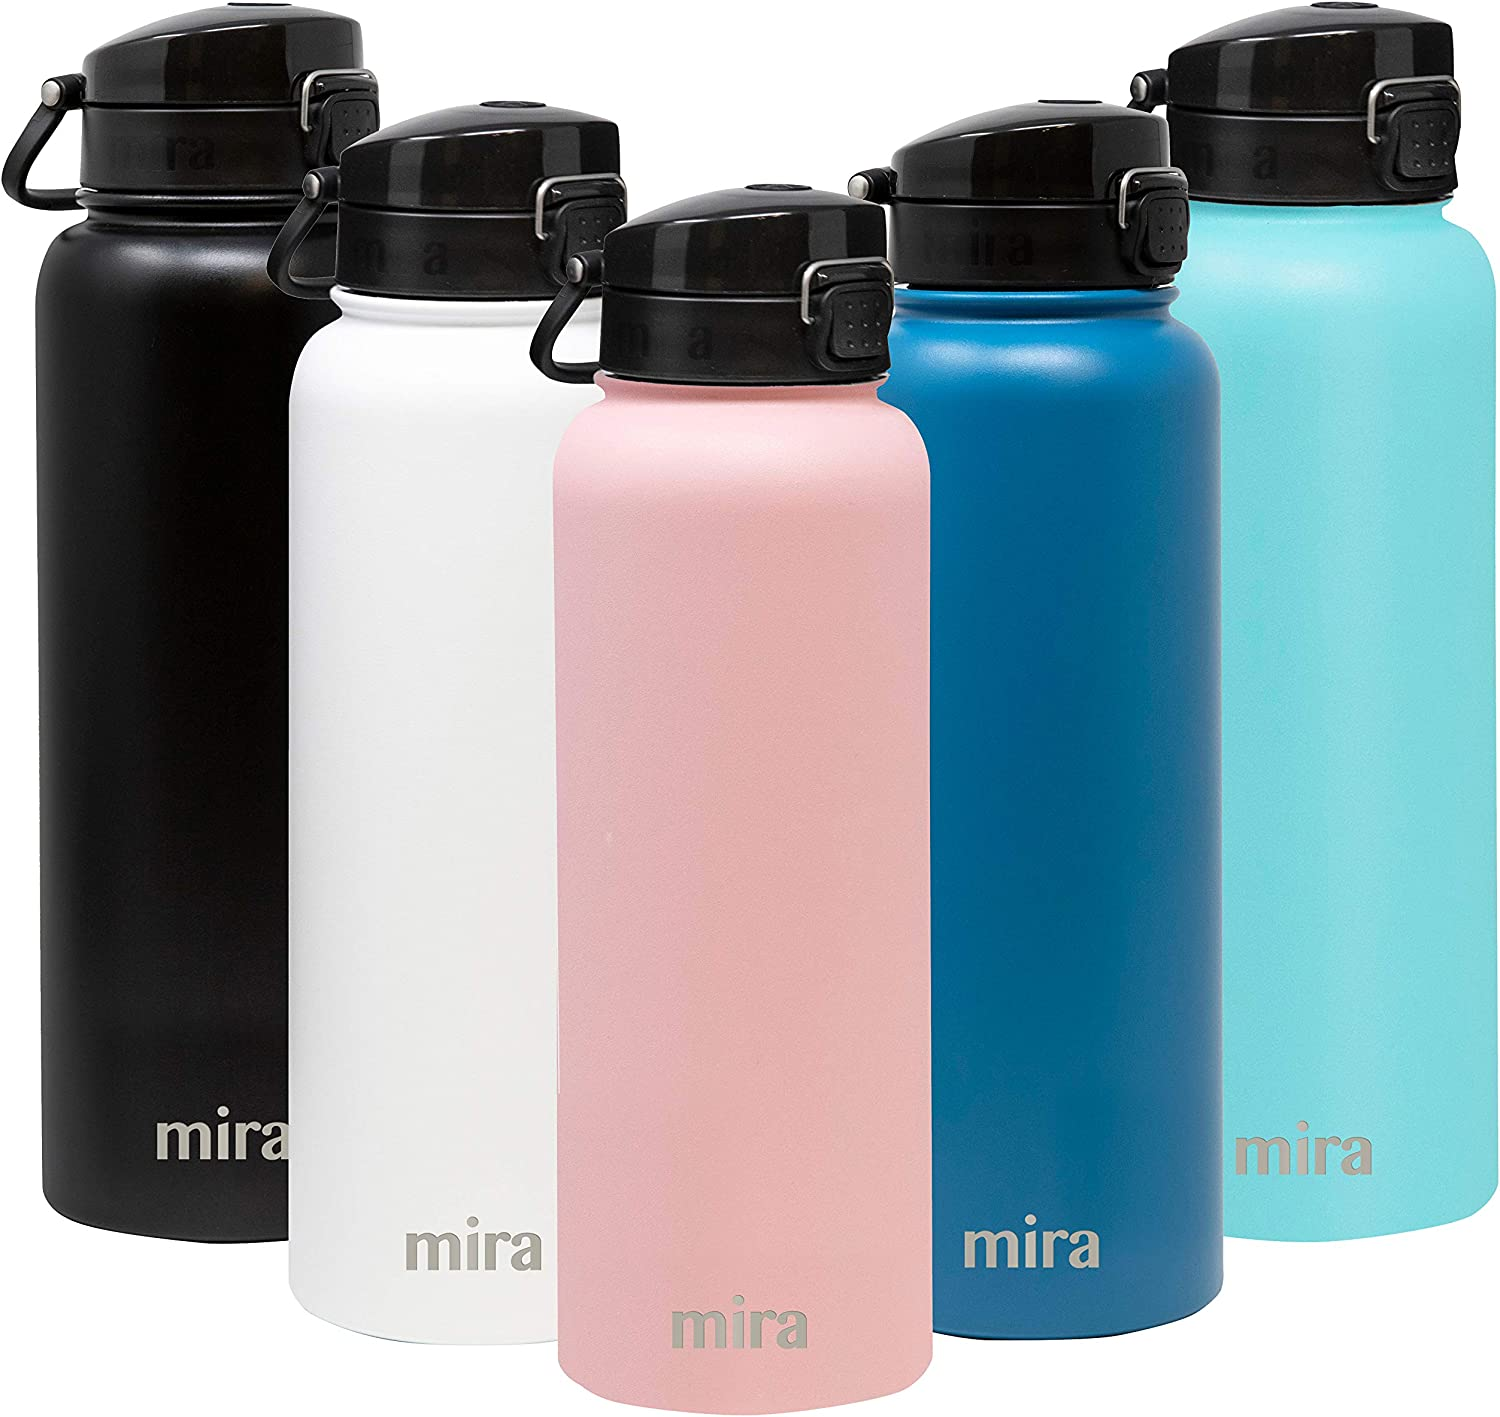 MIRA Stainless Steel Water Bottle - Hydro Vacuum Insulated Metal Thermos Flask Keeps Cold for 24 Hours, Hot for 12 Hours - BPA-Free One Touch Spout Lid Cap - 40 oz (1200 ml) Rose Pink